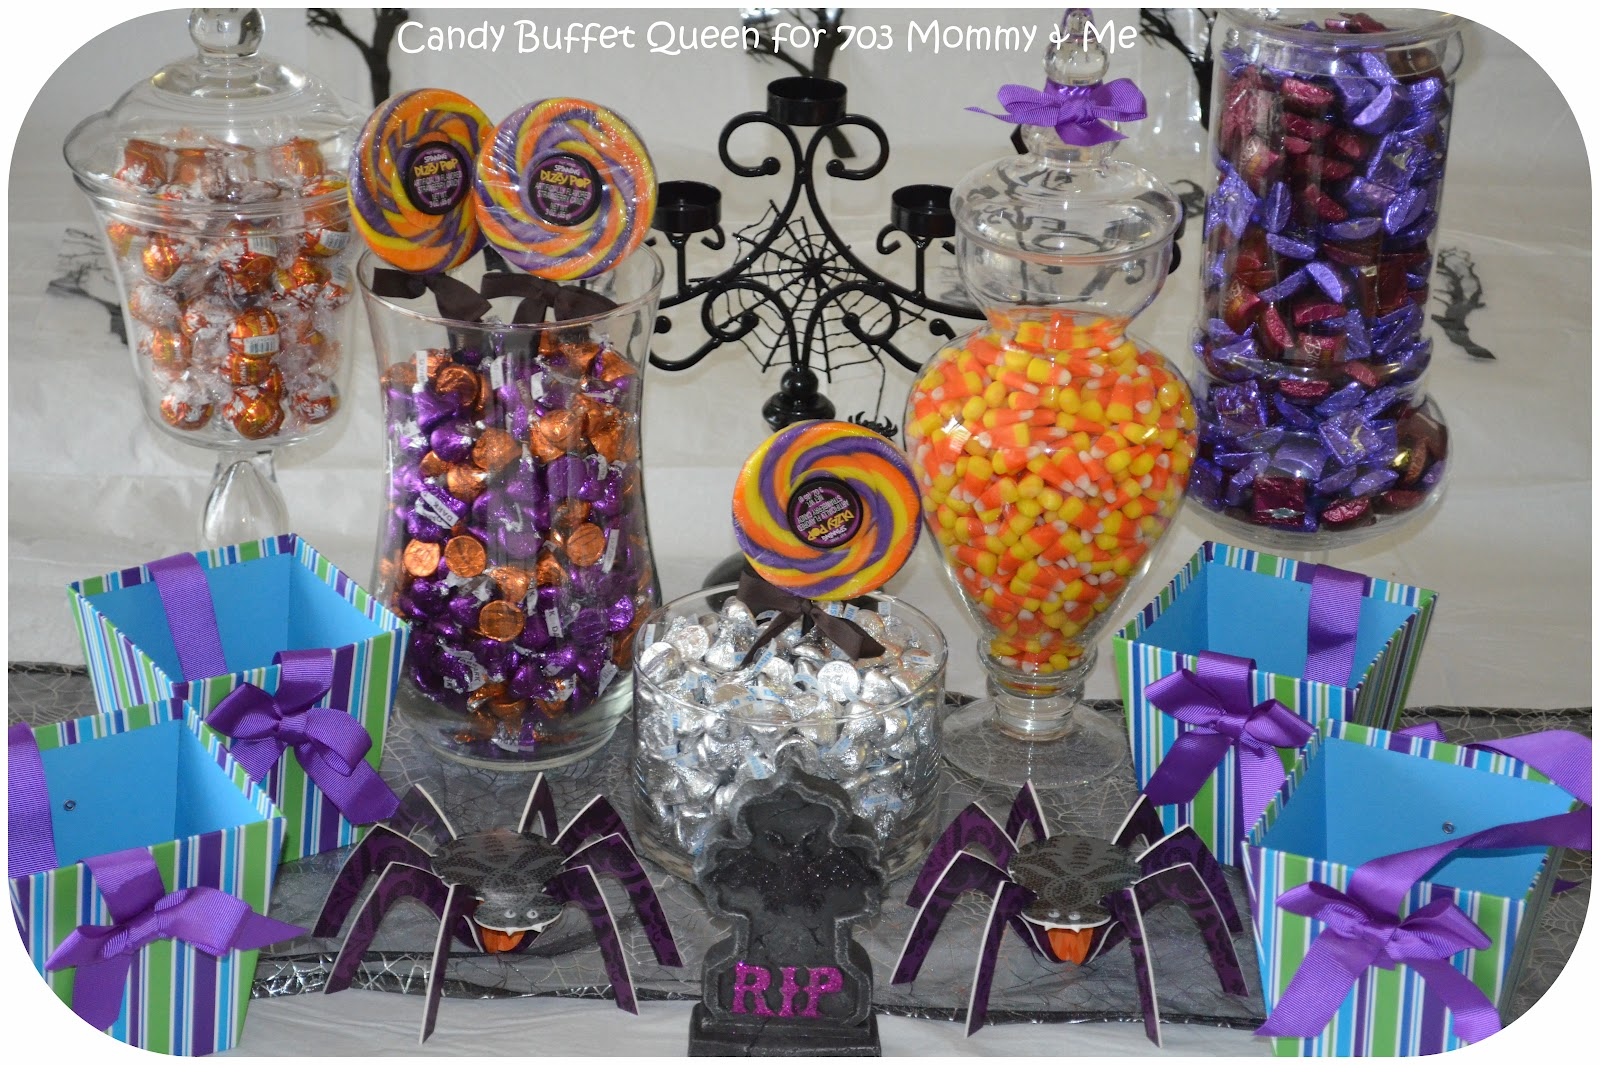 703 mommy & me: halloween party planning tips with the candy buffet